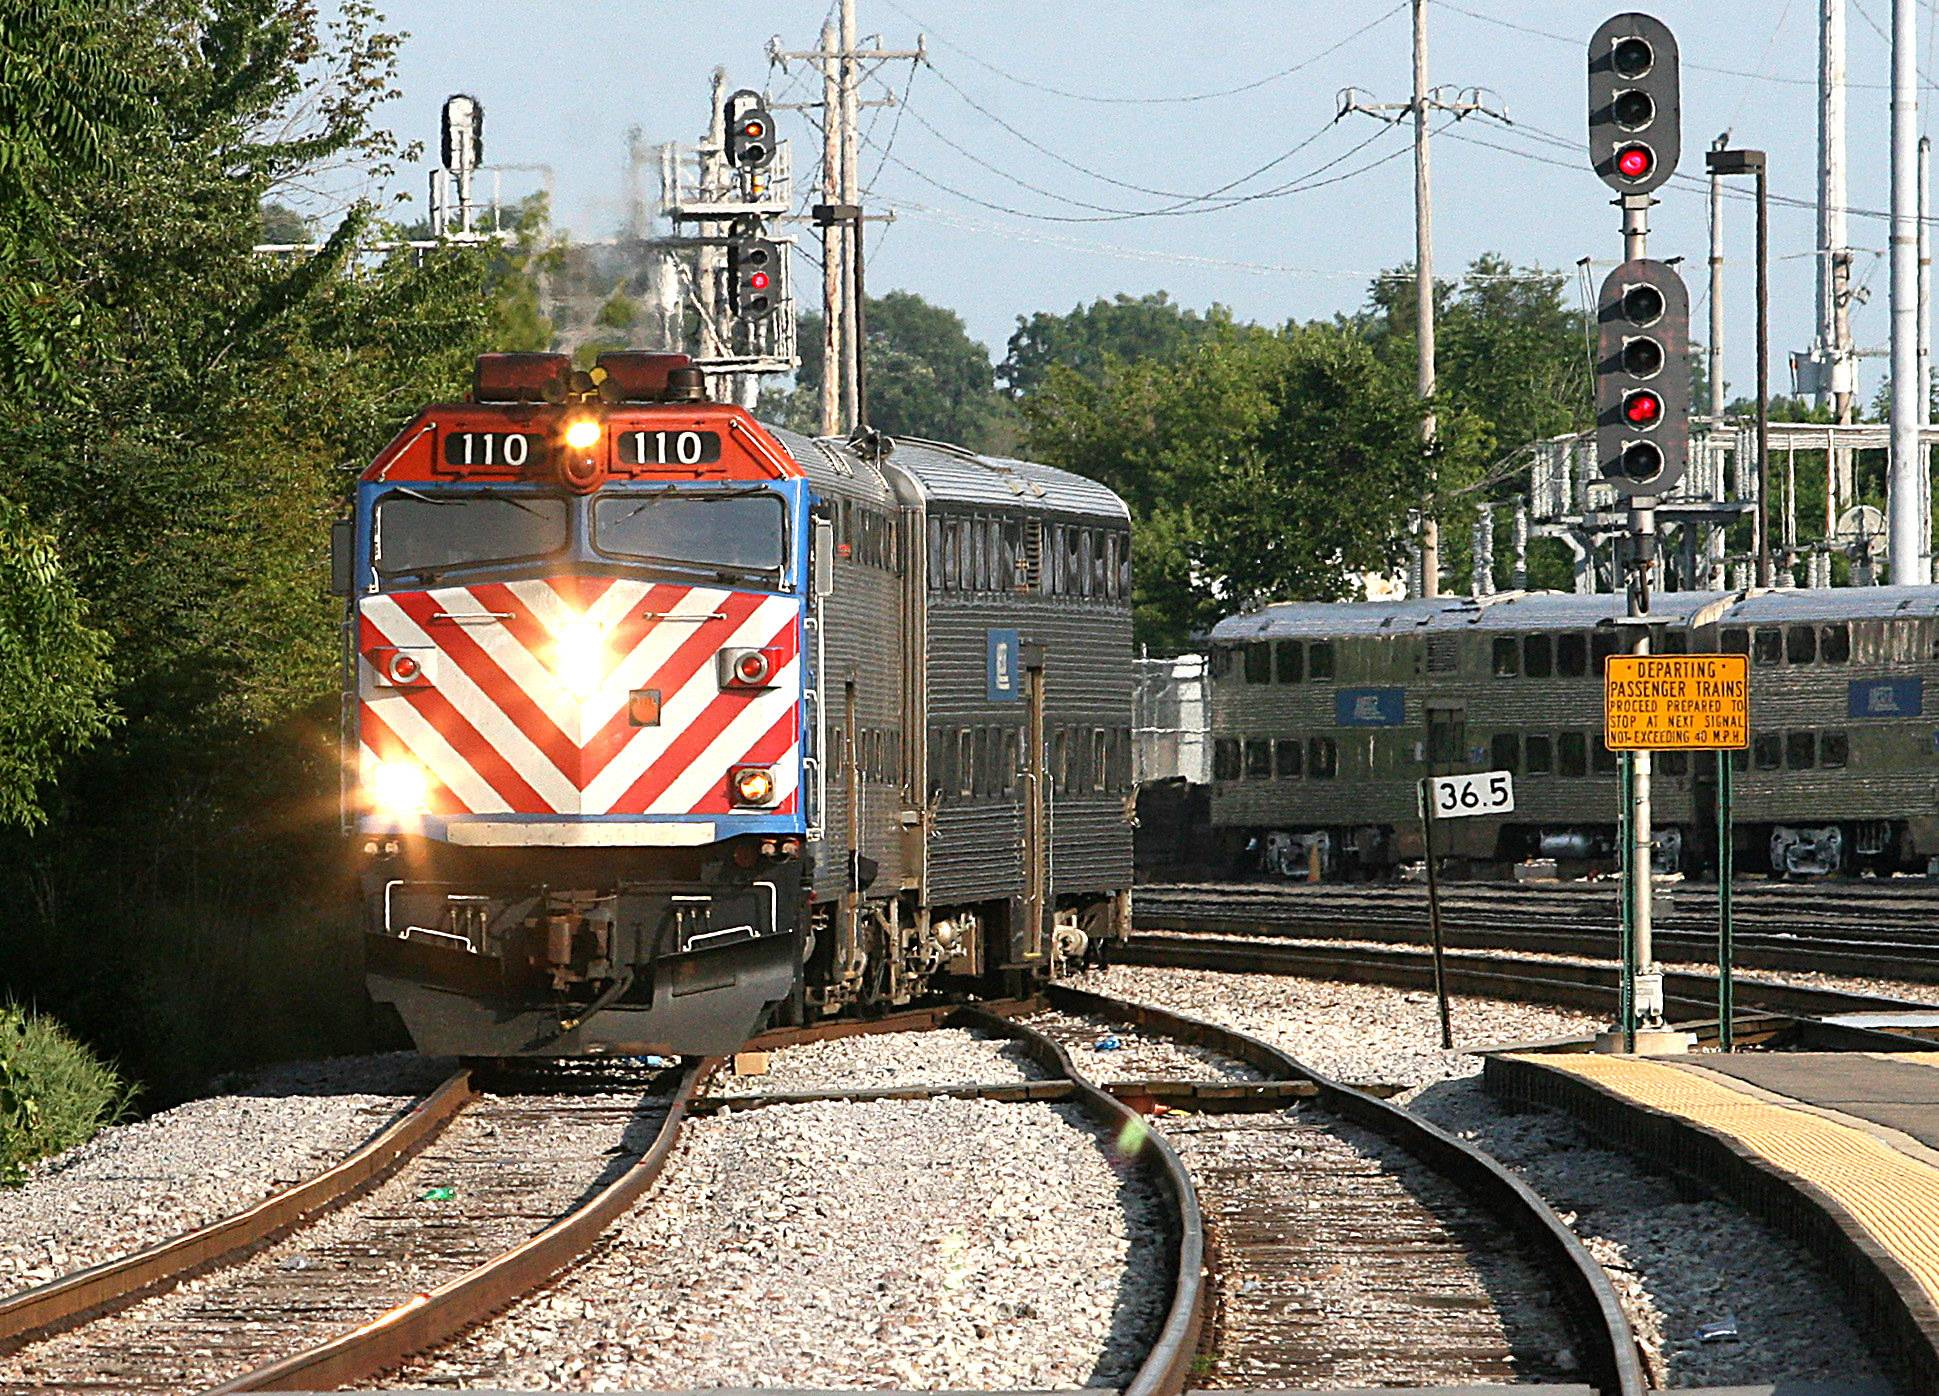 Metra's doomsday budget includes fare hikes, service cuts